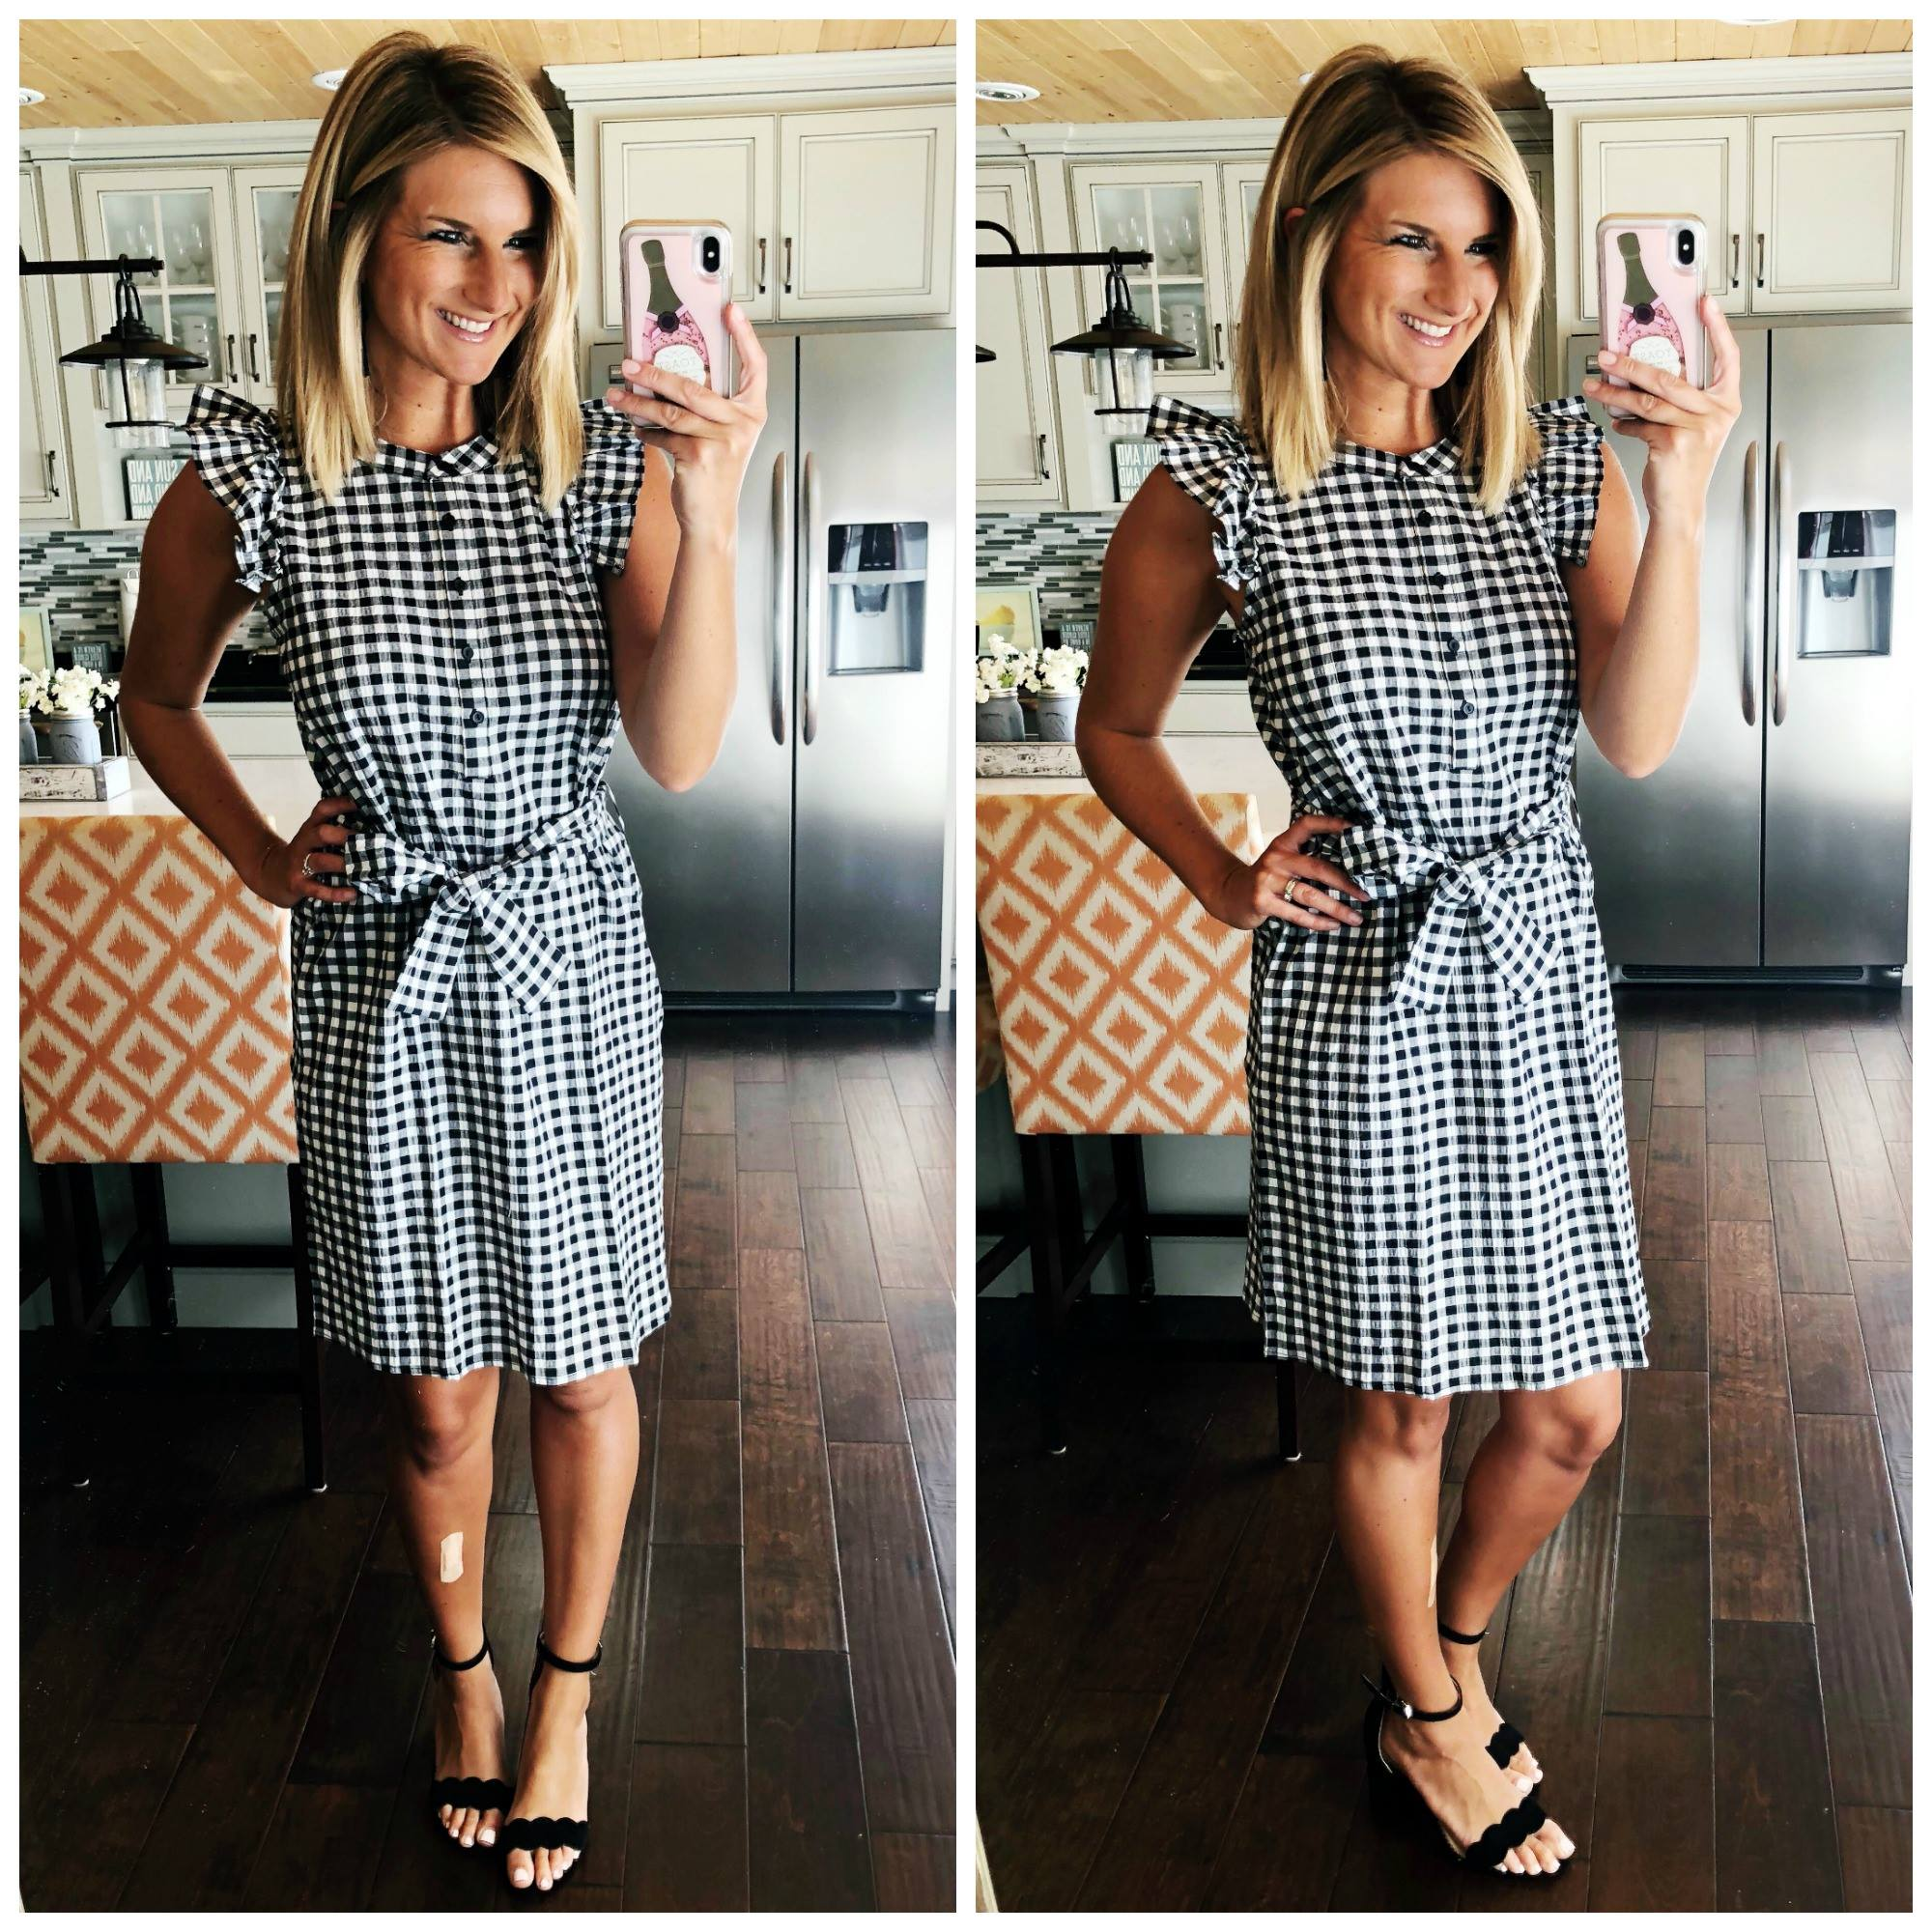 Summer Dress // Gingham Dress with Scalloped Heels // Dress for a wedding, reunion, bridal shower